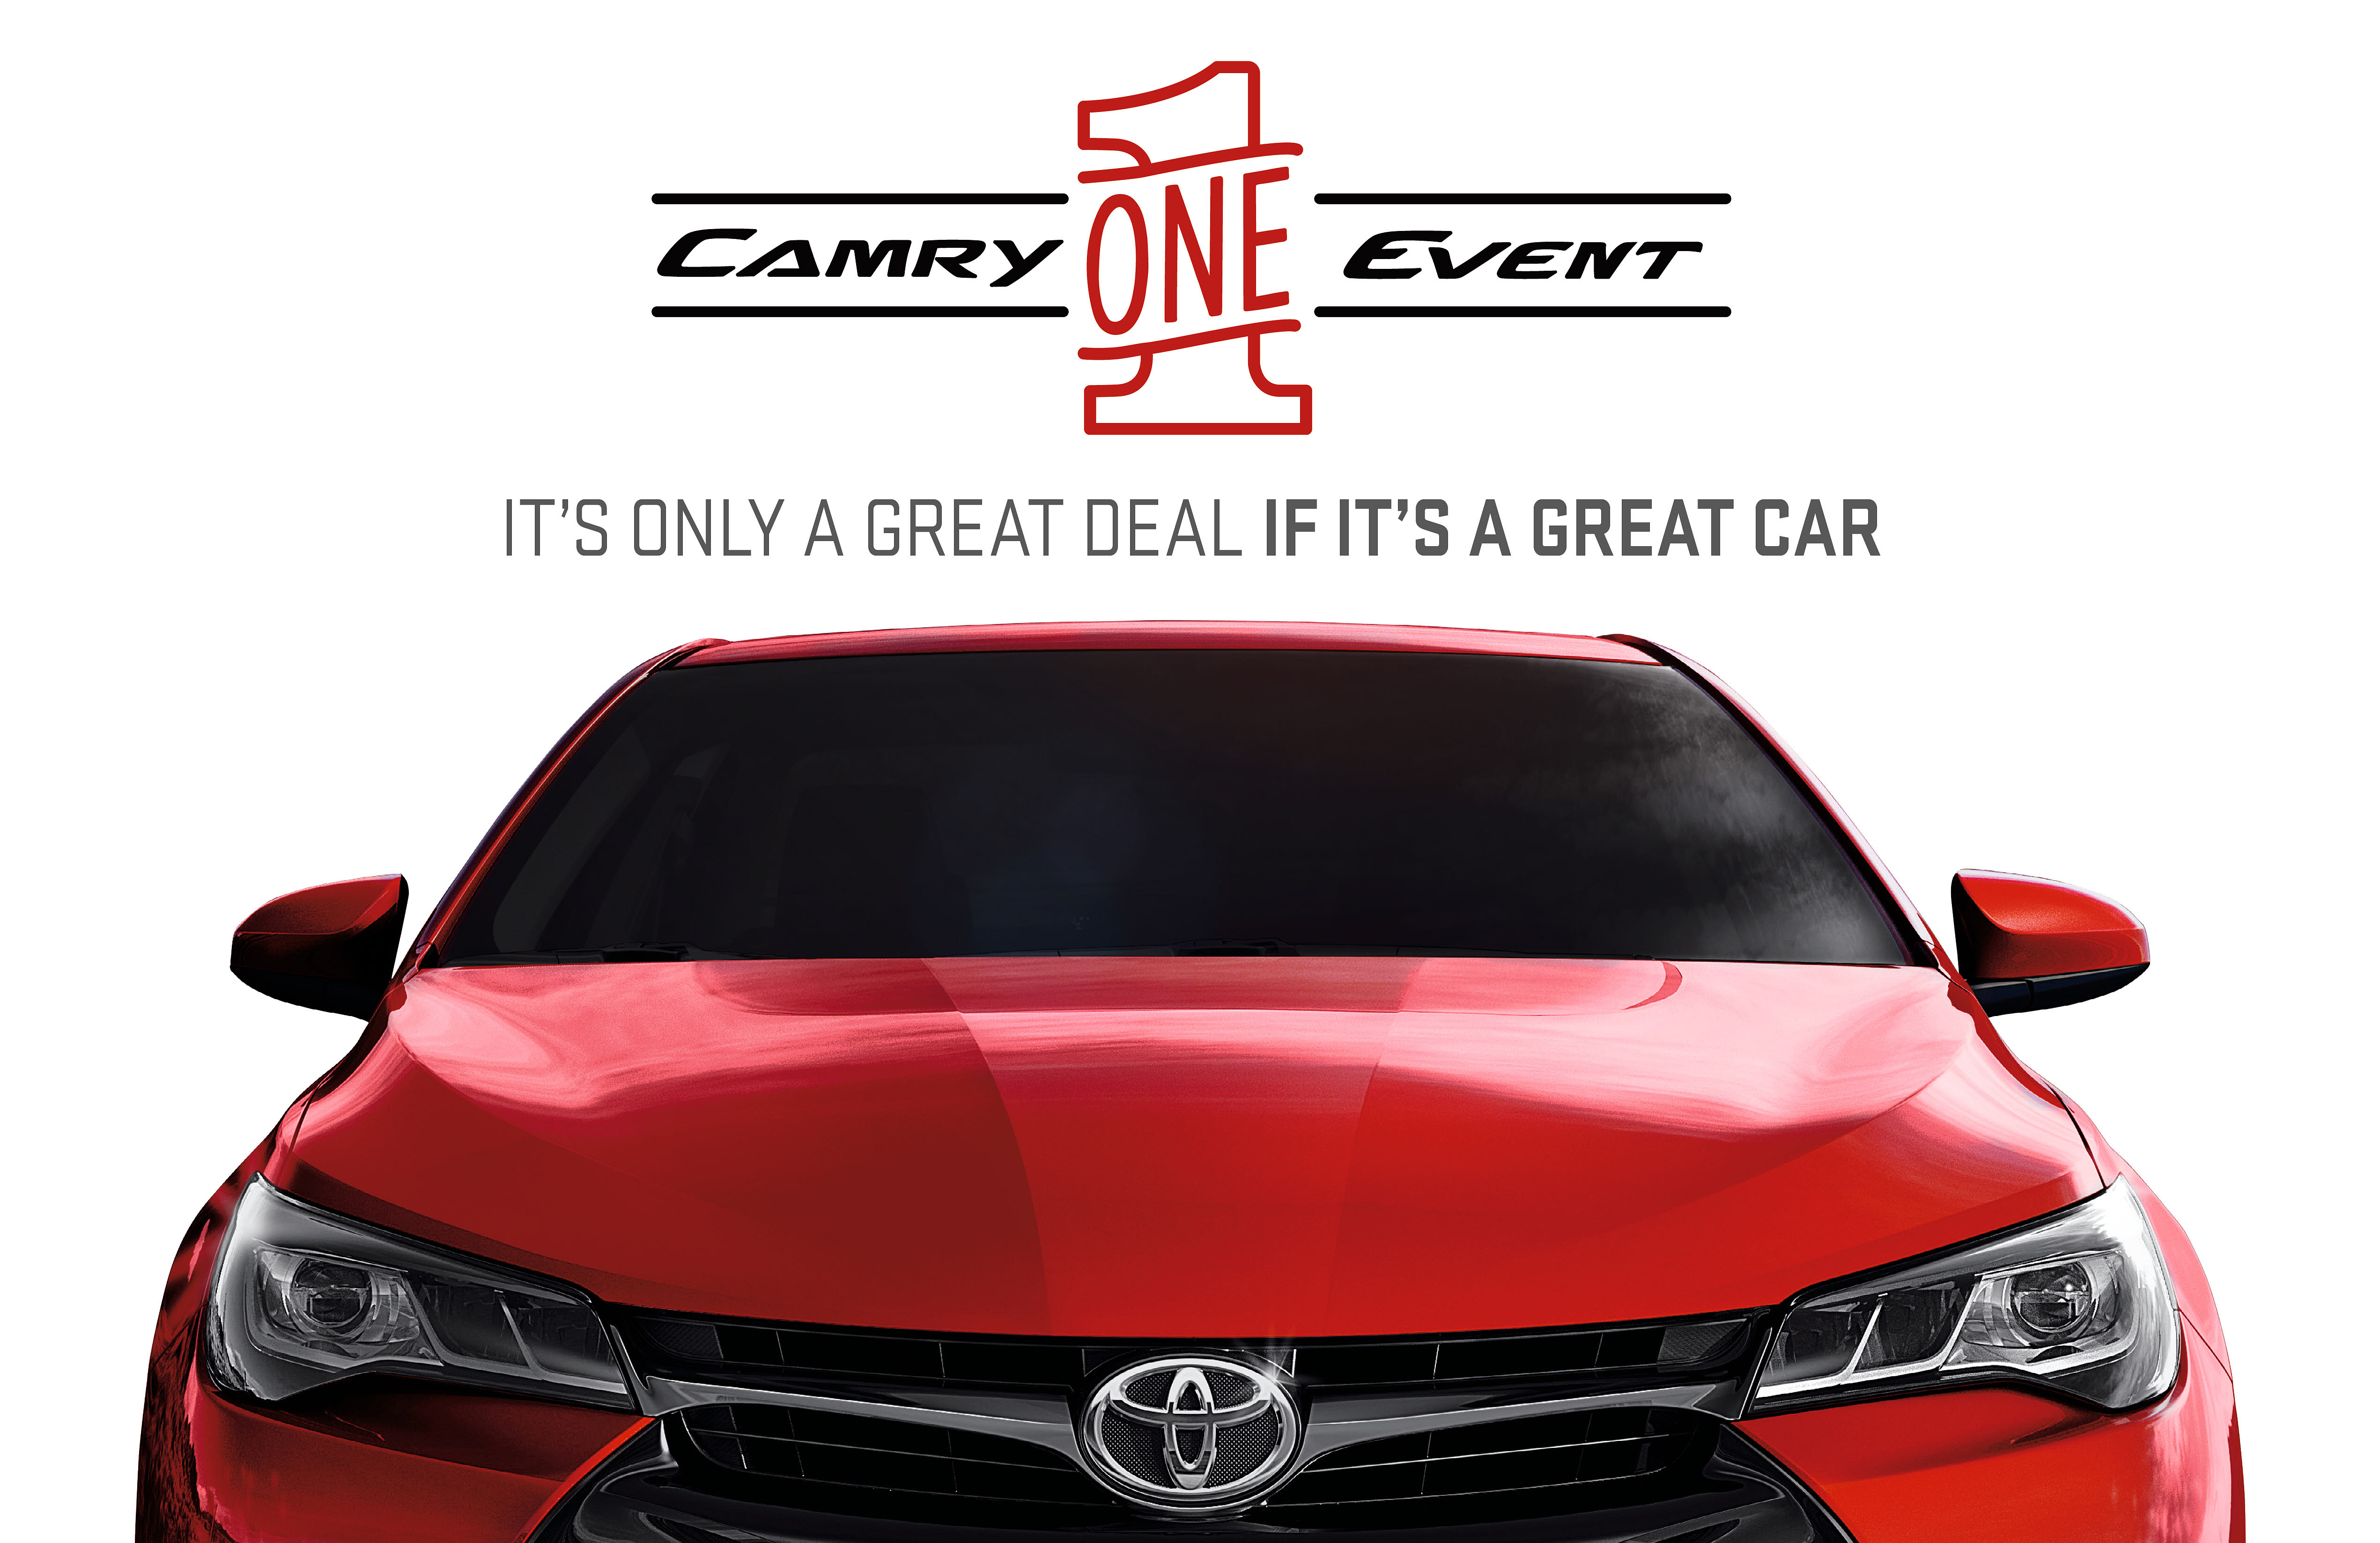 CAMRY ONE EVENT POS